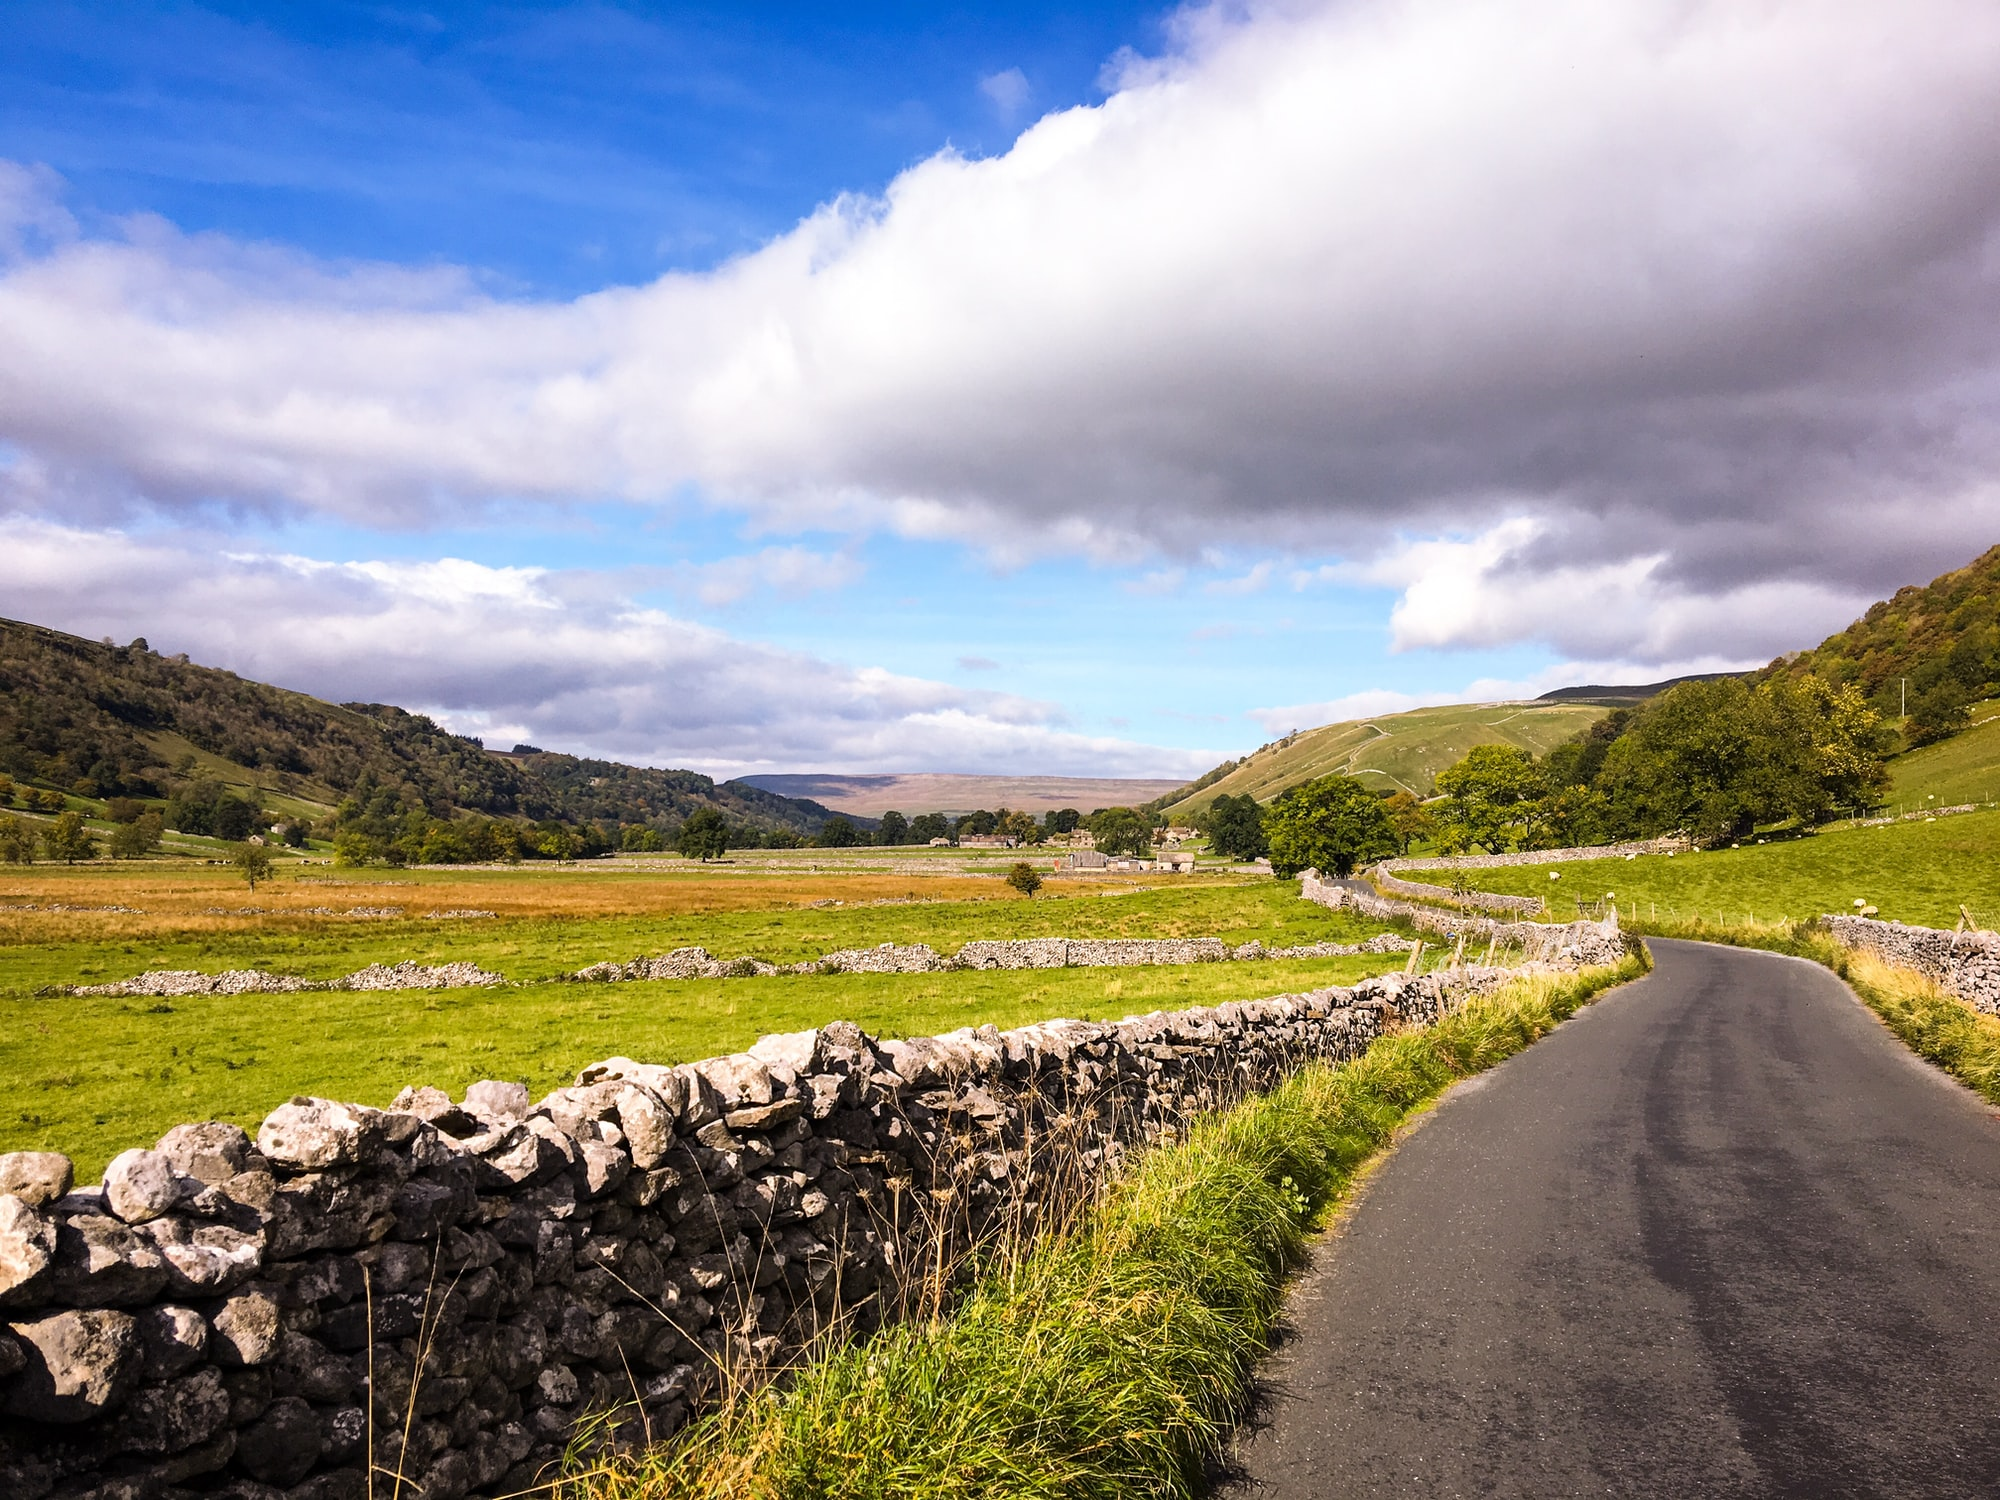 Solo bike ride through the heart of the Yorkshire Dales.